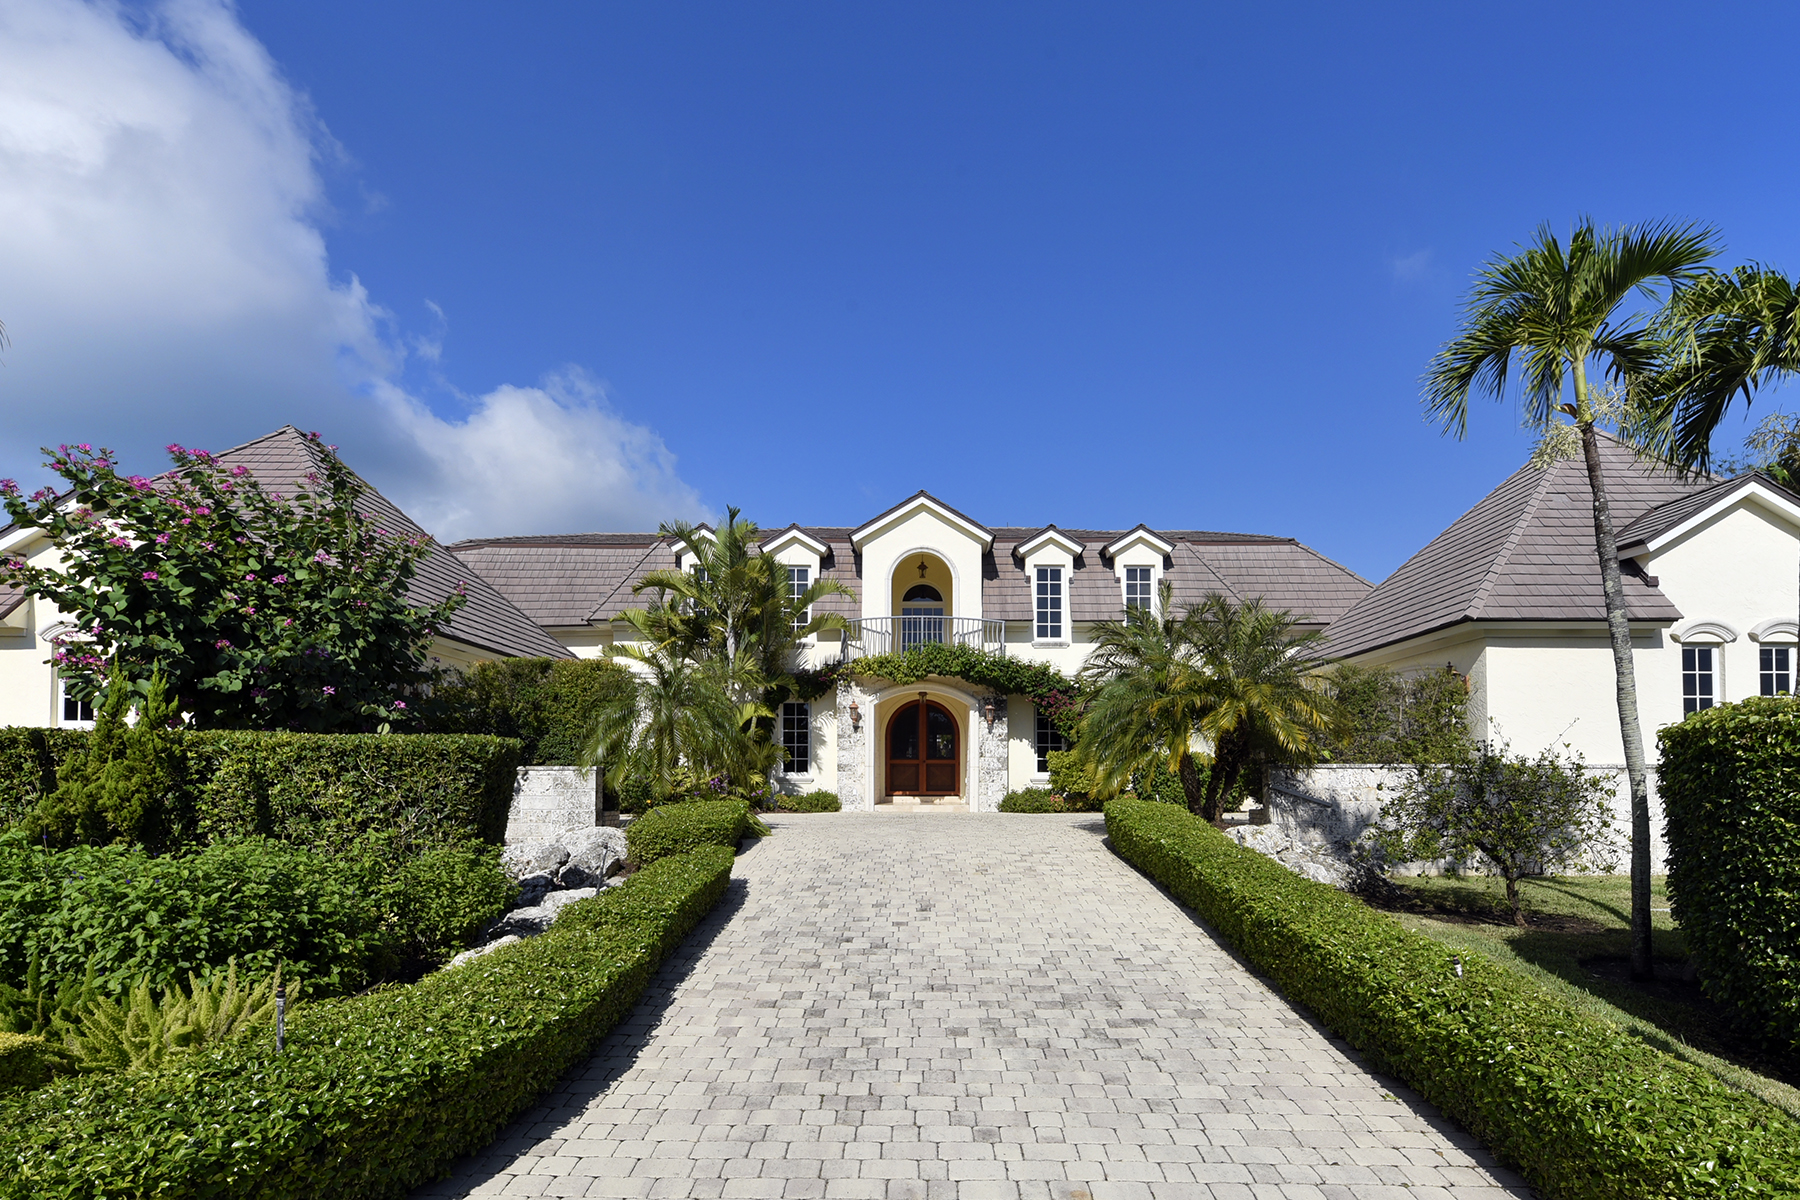 Maison unifamiliale pour l Vente à Expansive Waterfront Home at Ocean Reef 25 Bay Ridge Road Ocean Reef Community, Key Largo, Florida, 33037 États-Unis